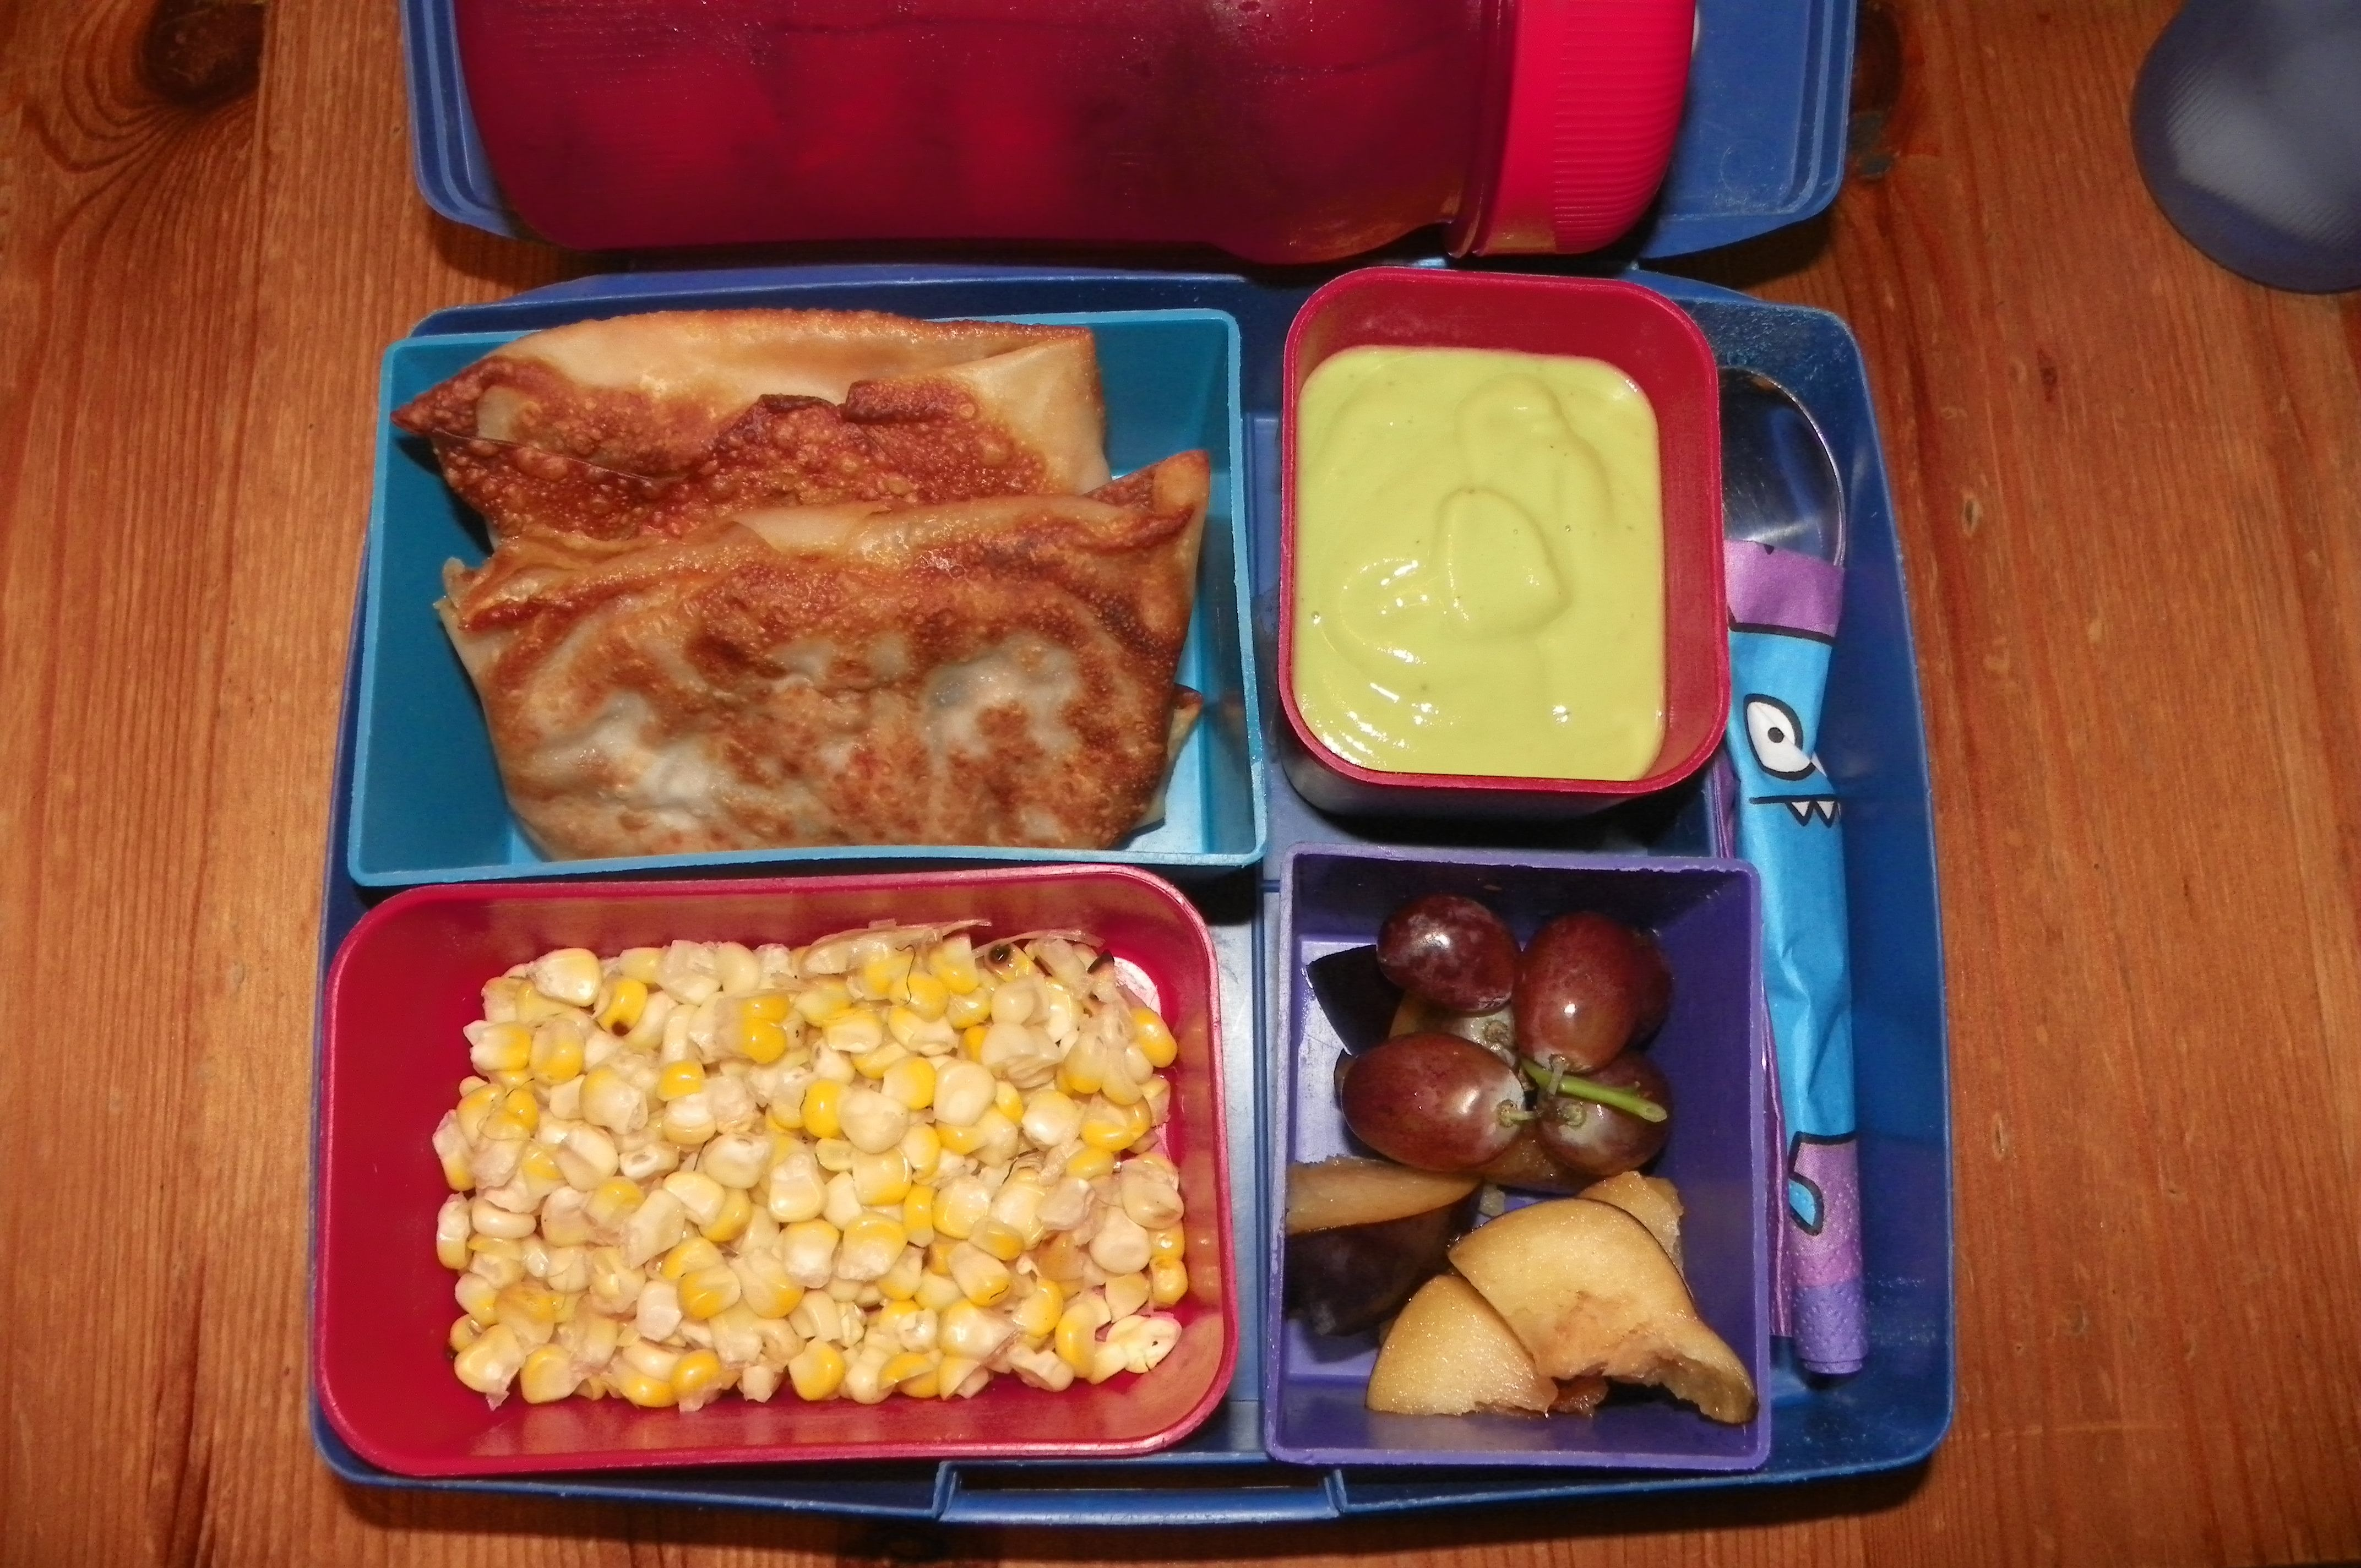 Southwest egg rolls w/ avocado dipping sauce, grilled corn, and grapes & plums